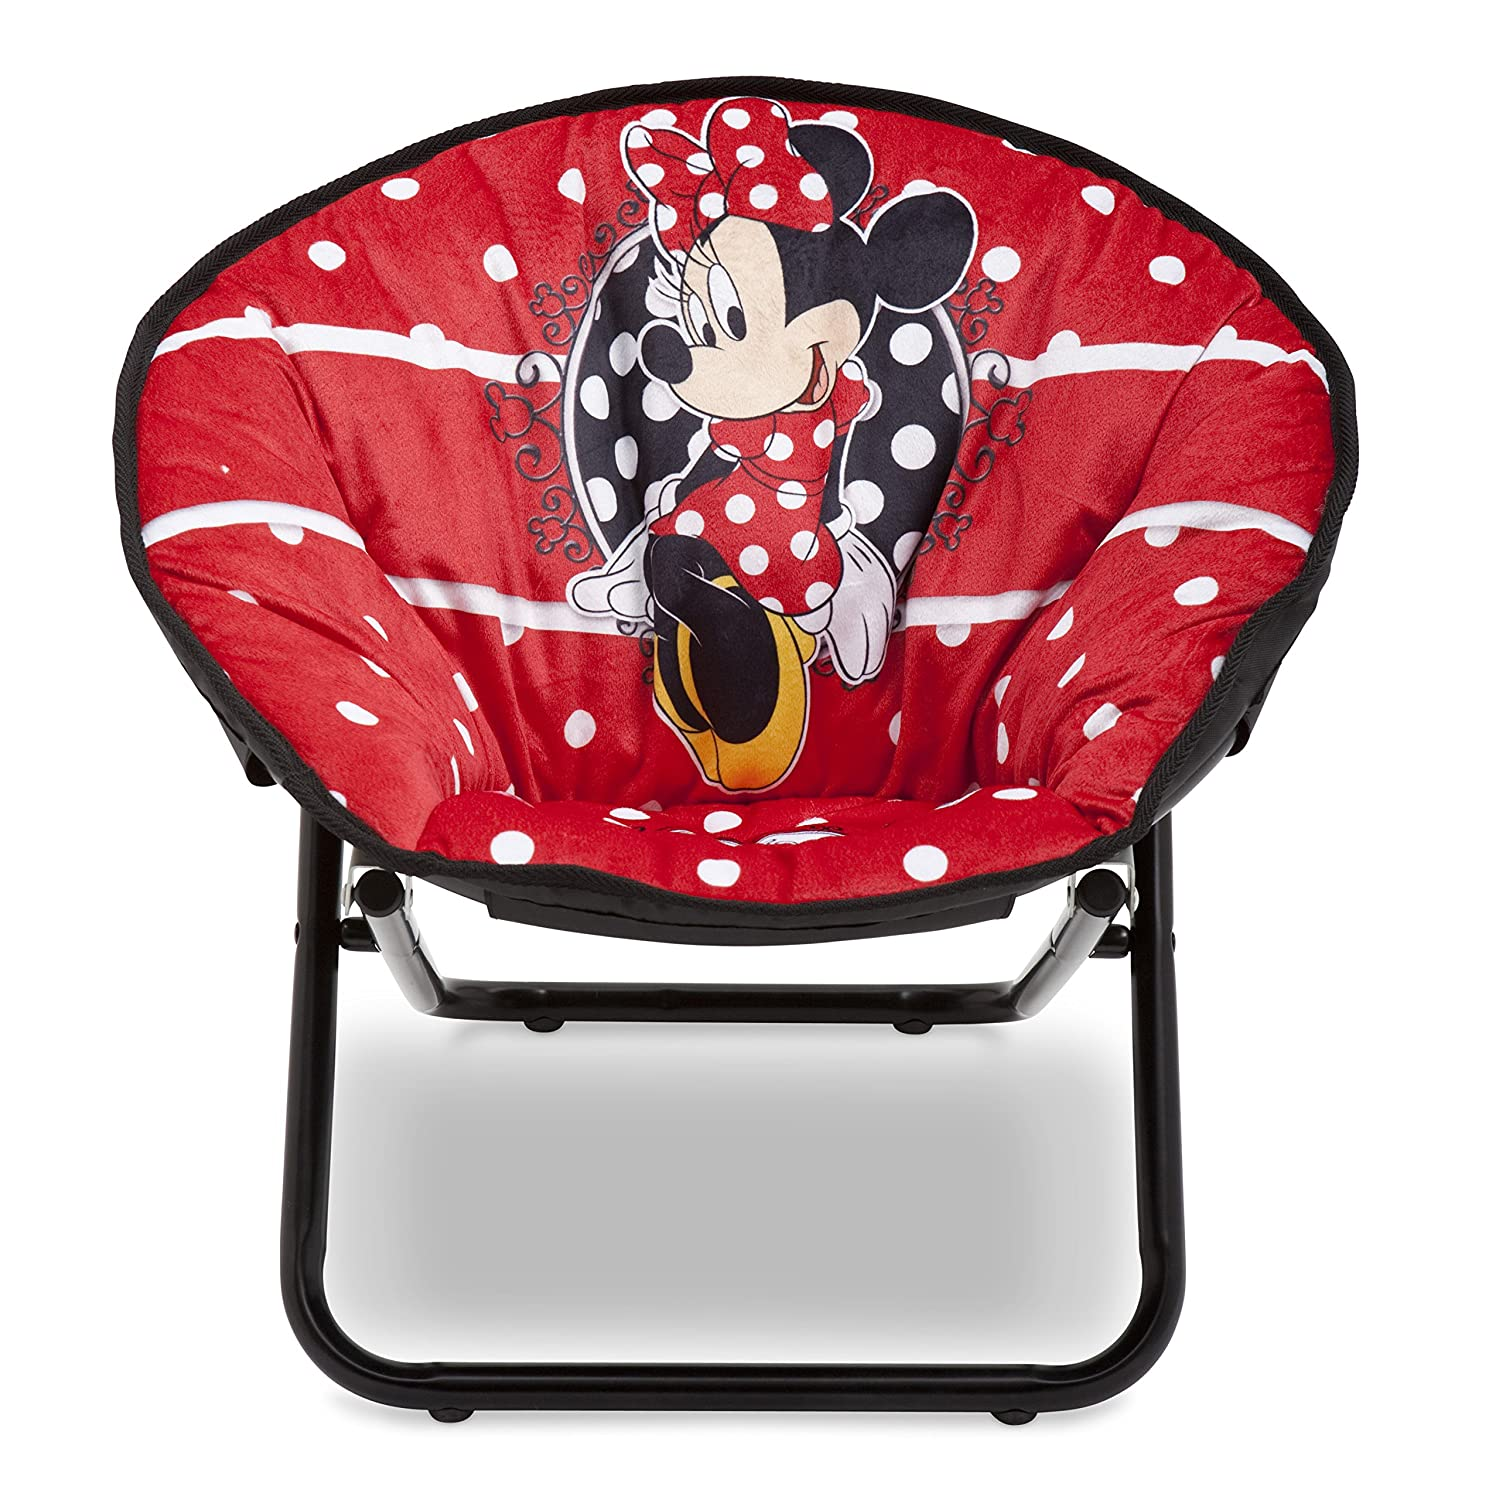 Paw Patrol Children's Saucer Chair Delta Children Products TC83534PW